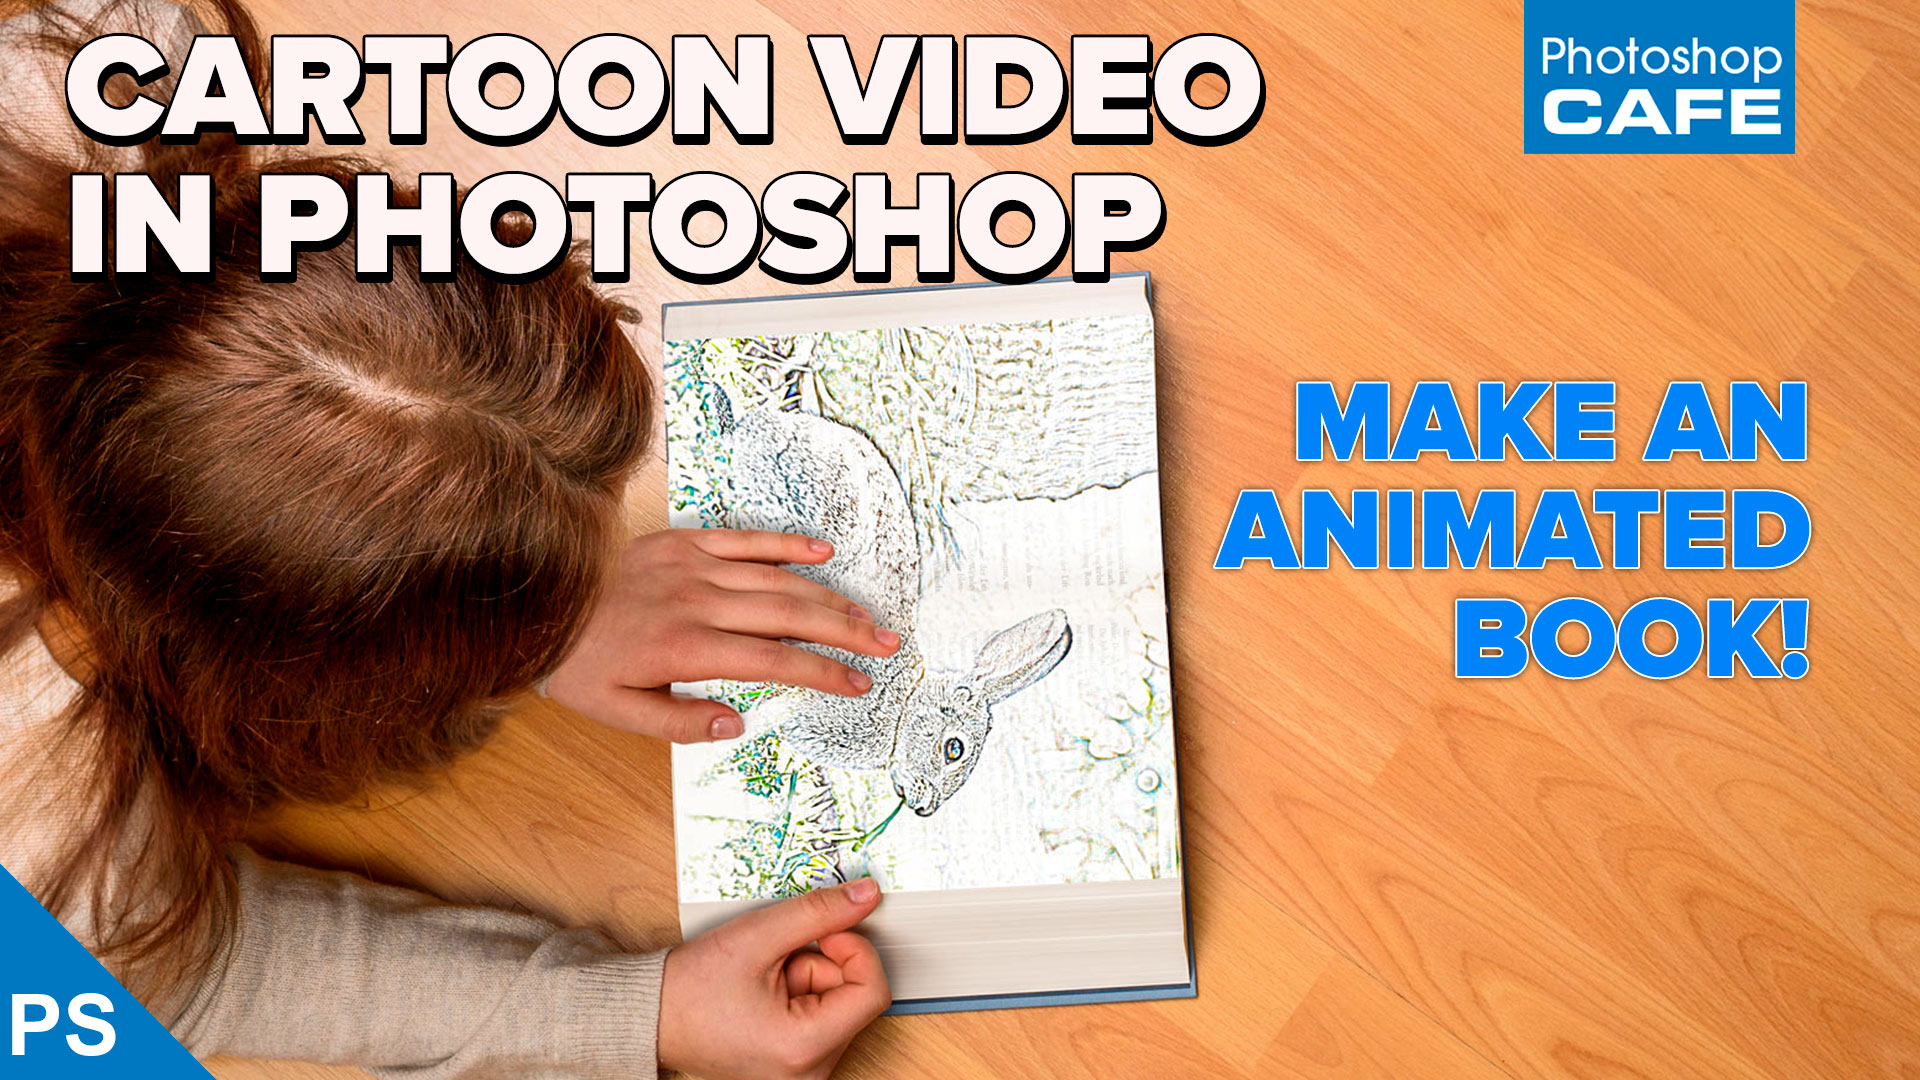 Make An Animated Cartoon From Video In Photoshop Tutorial Photoshopcafe